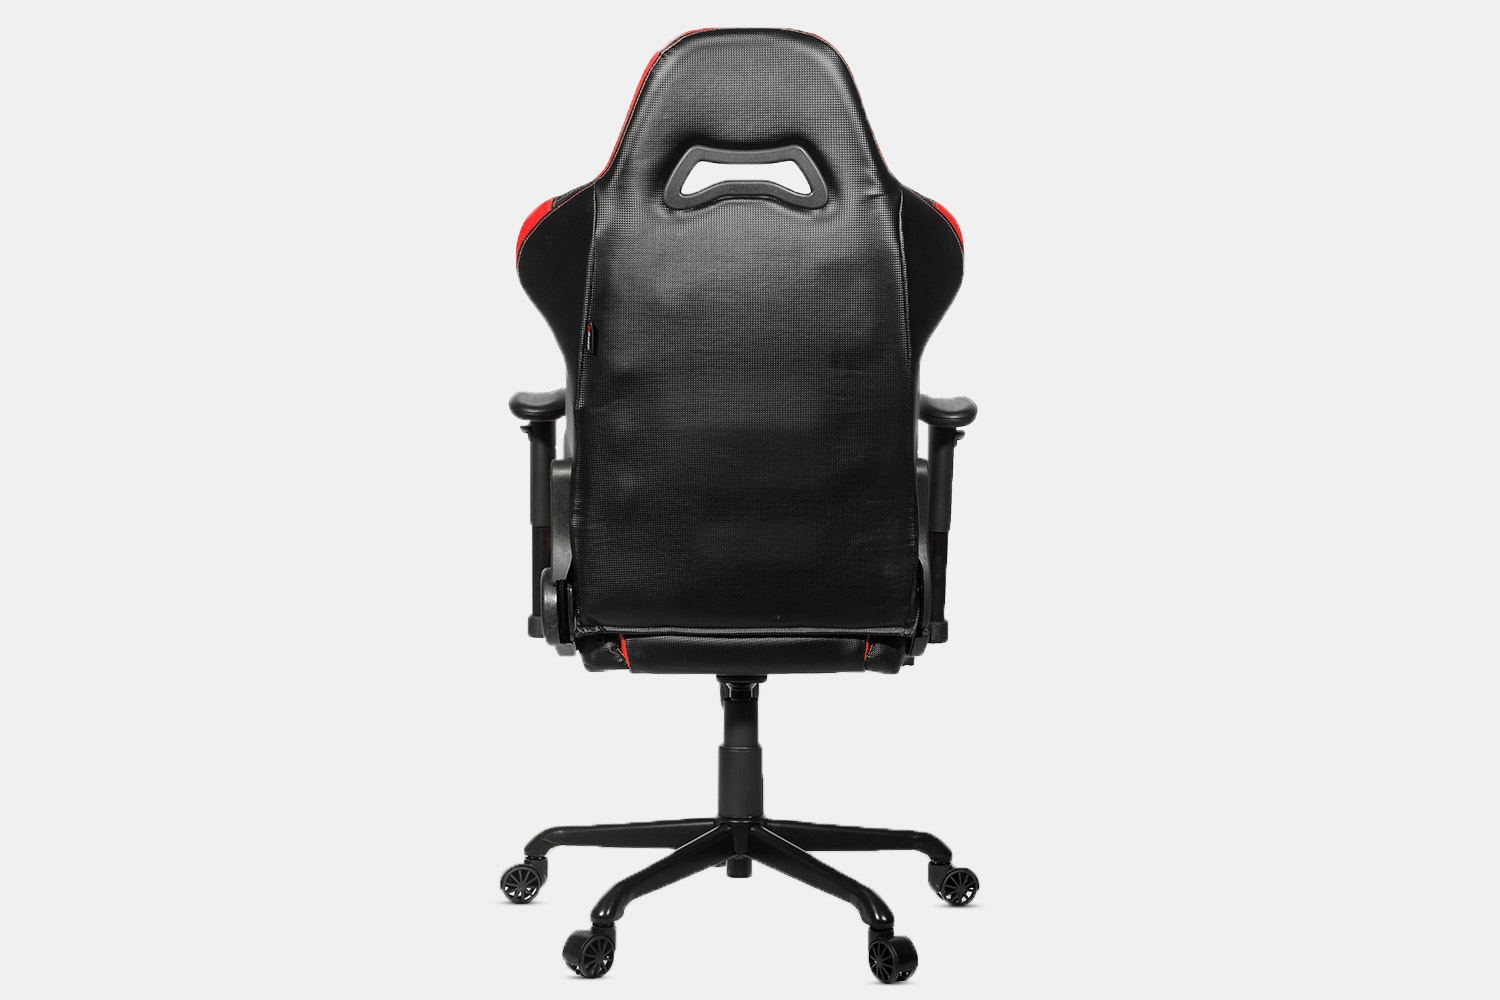 Arozzi Torretta & Torretta XL Gaming Chair